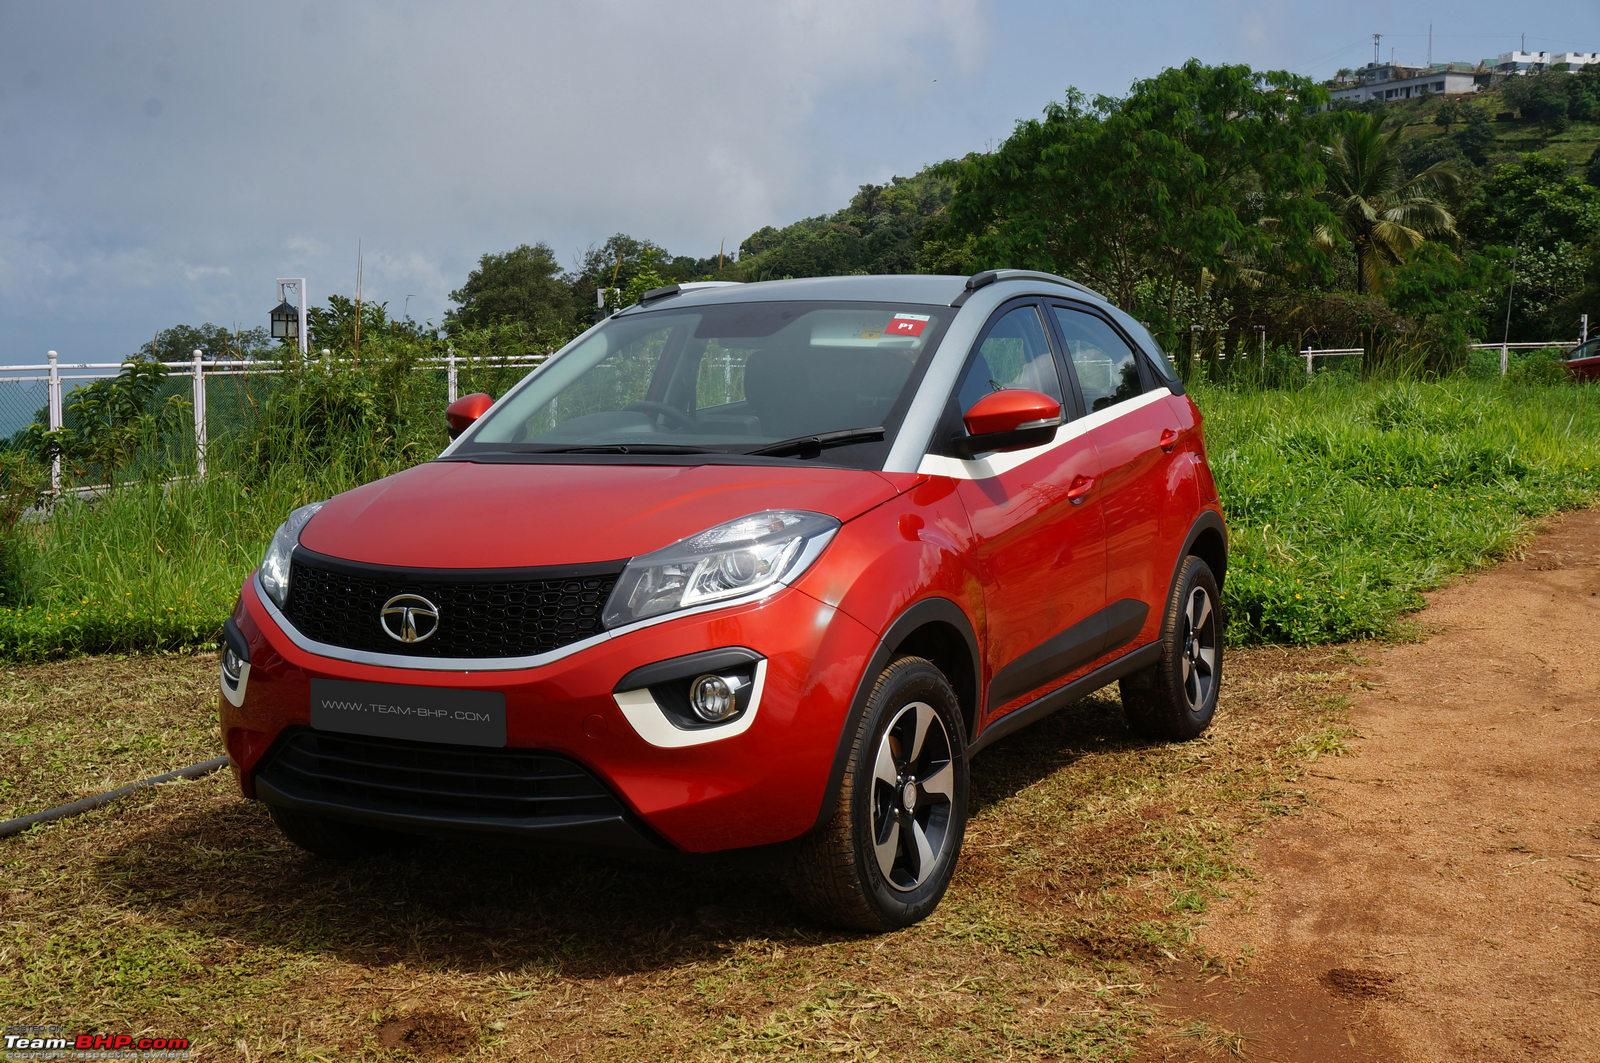 Tata Nexon : Official Review - Page 19 - Team-BHP